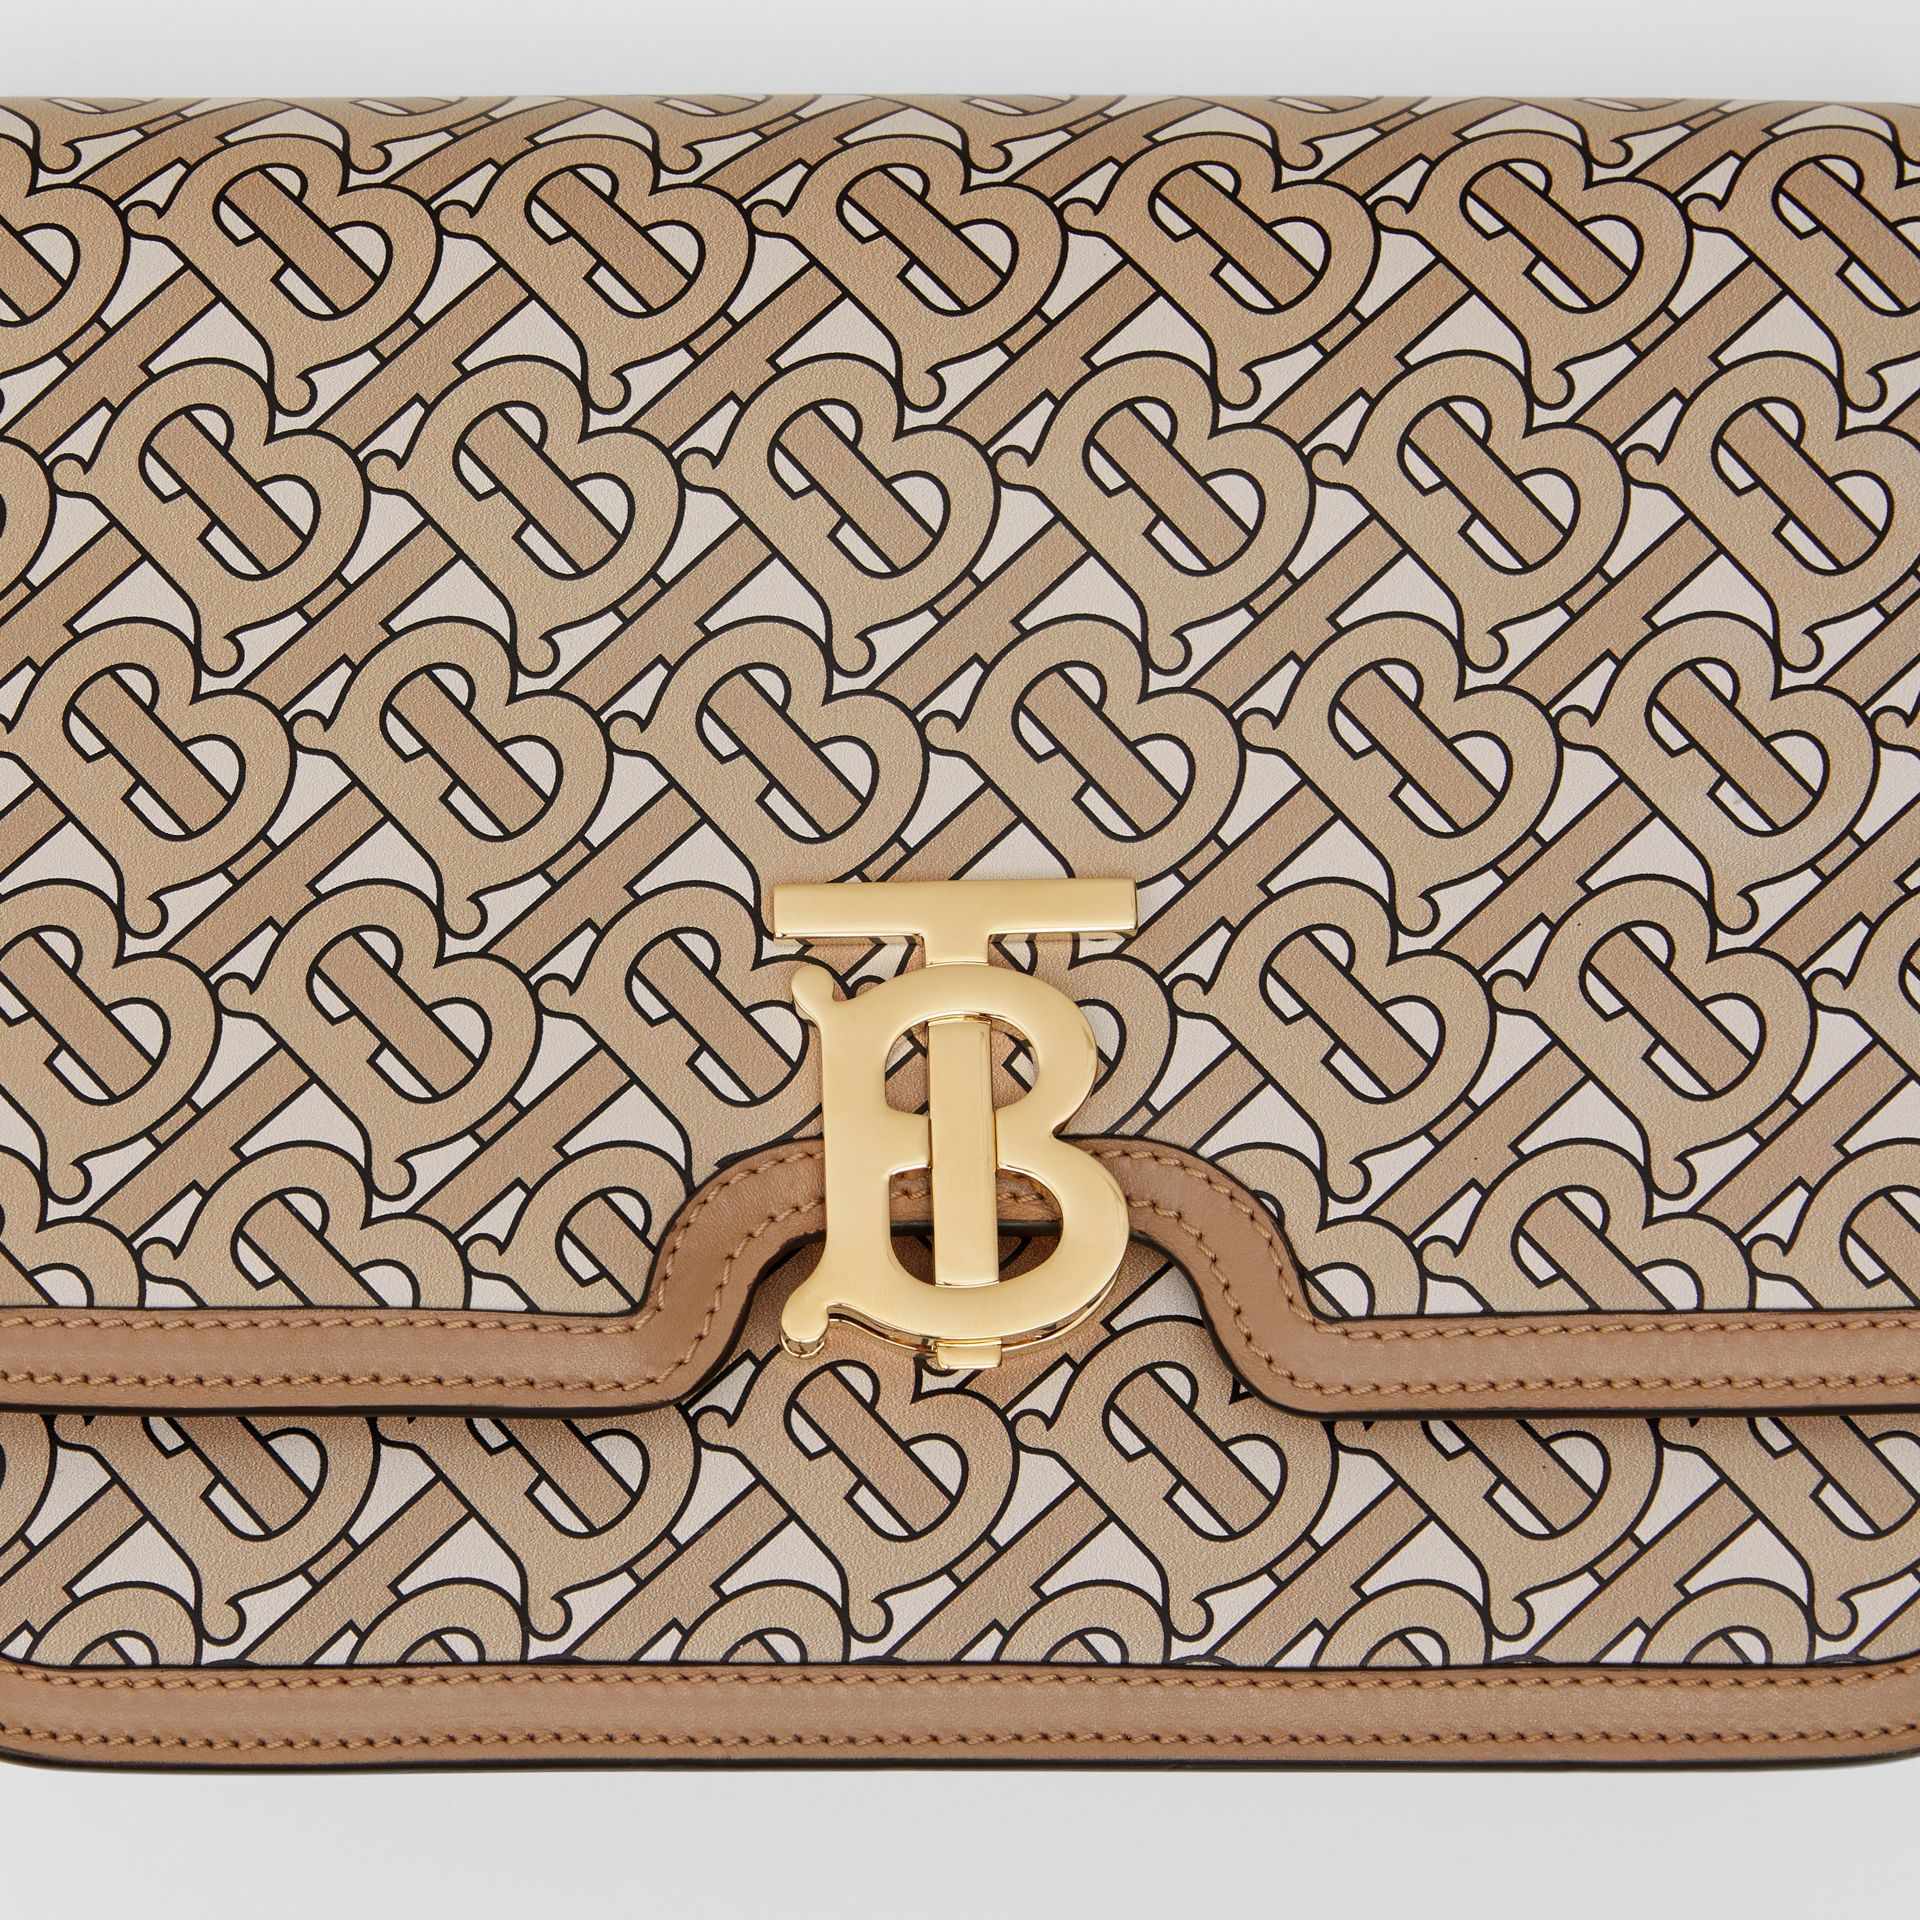 Medium Monogram Print Leather TB Bag in Beige - Women | Burberry Australia - gallery image 1